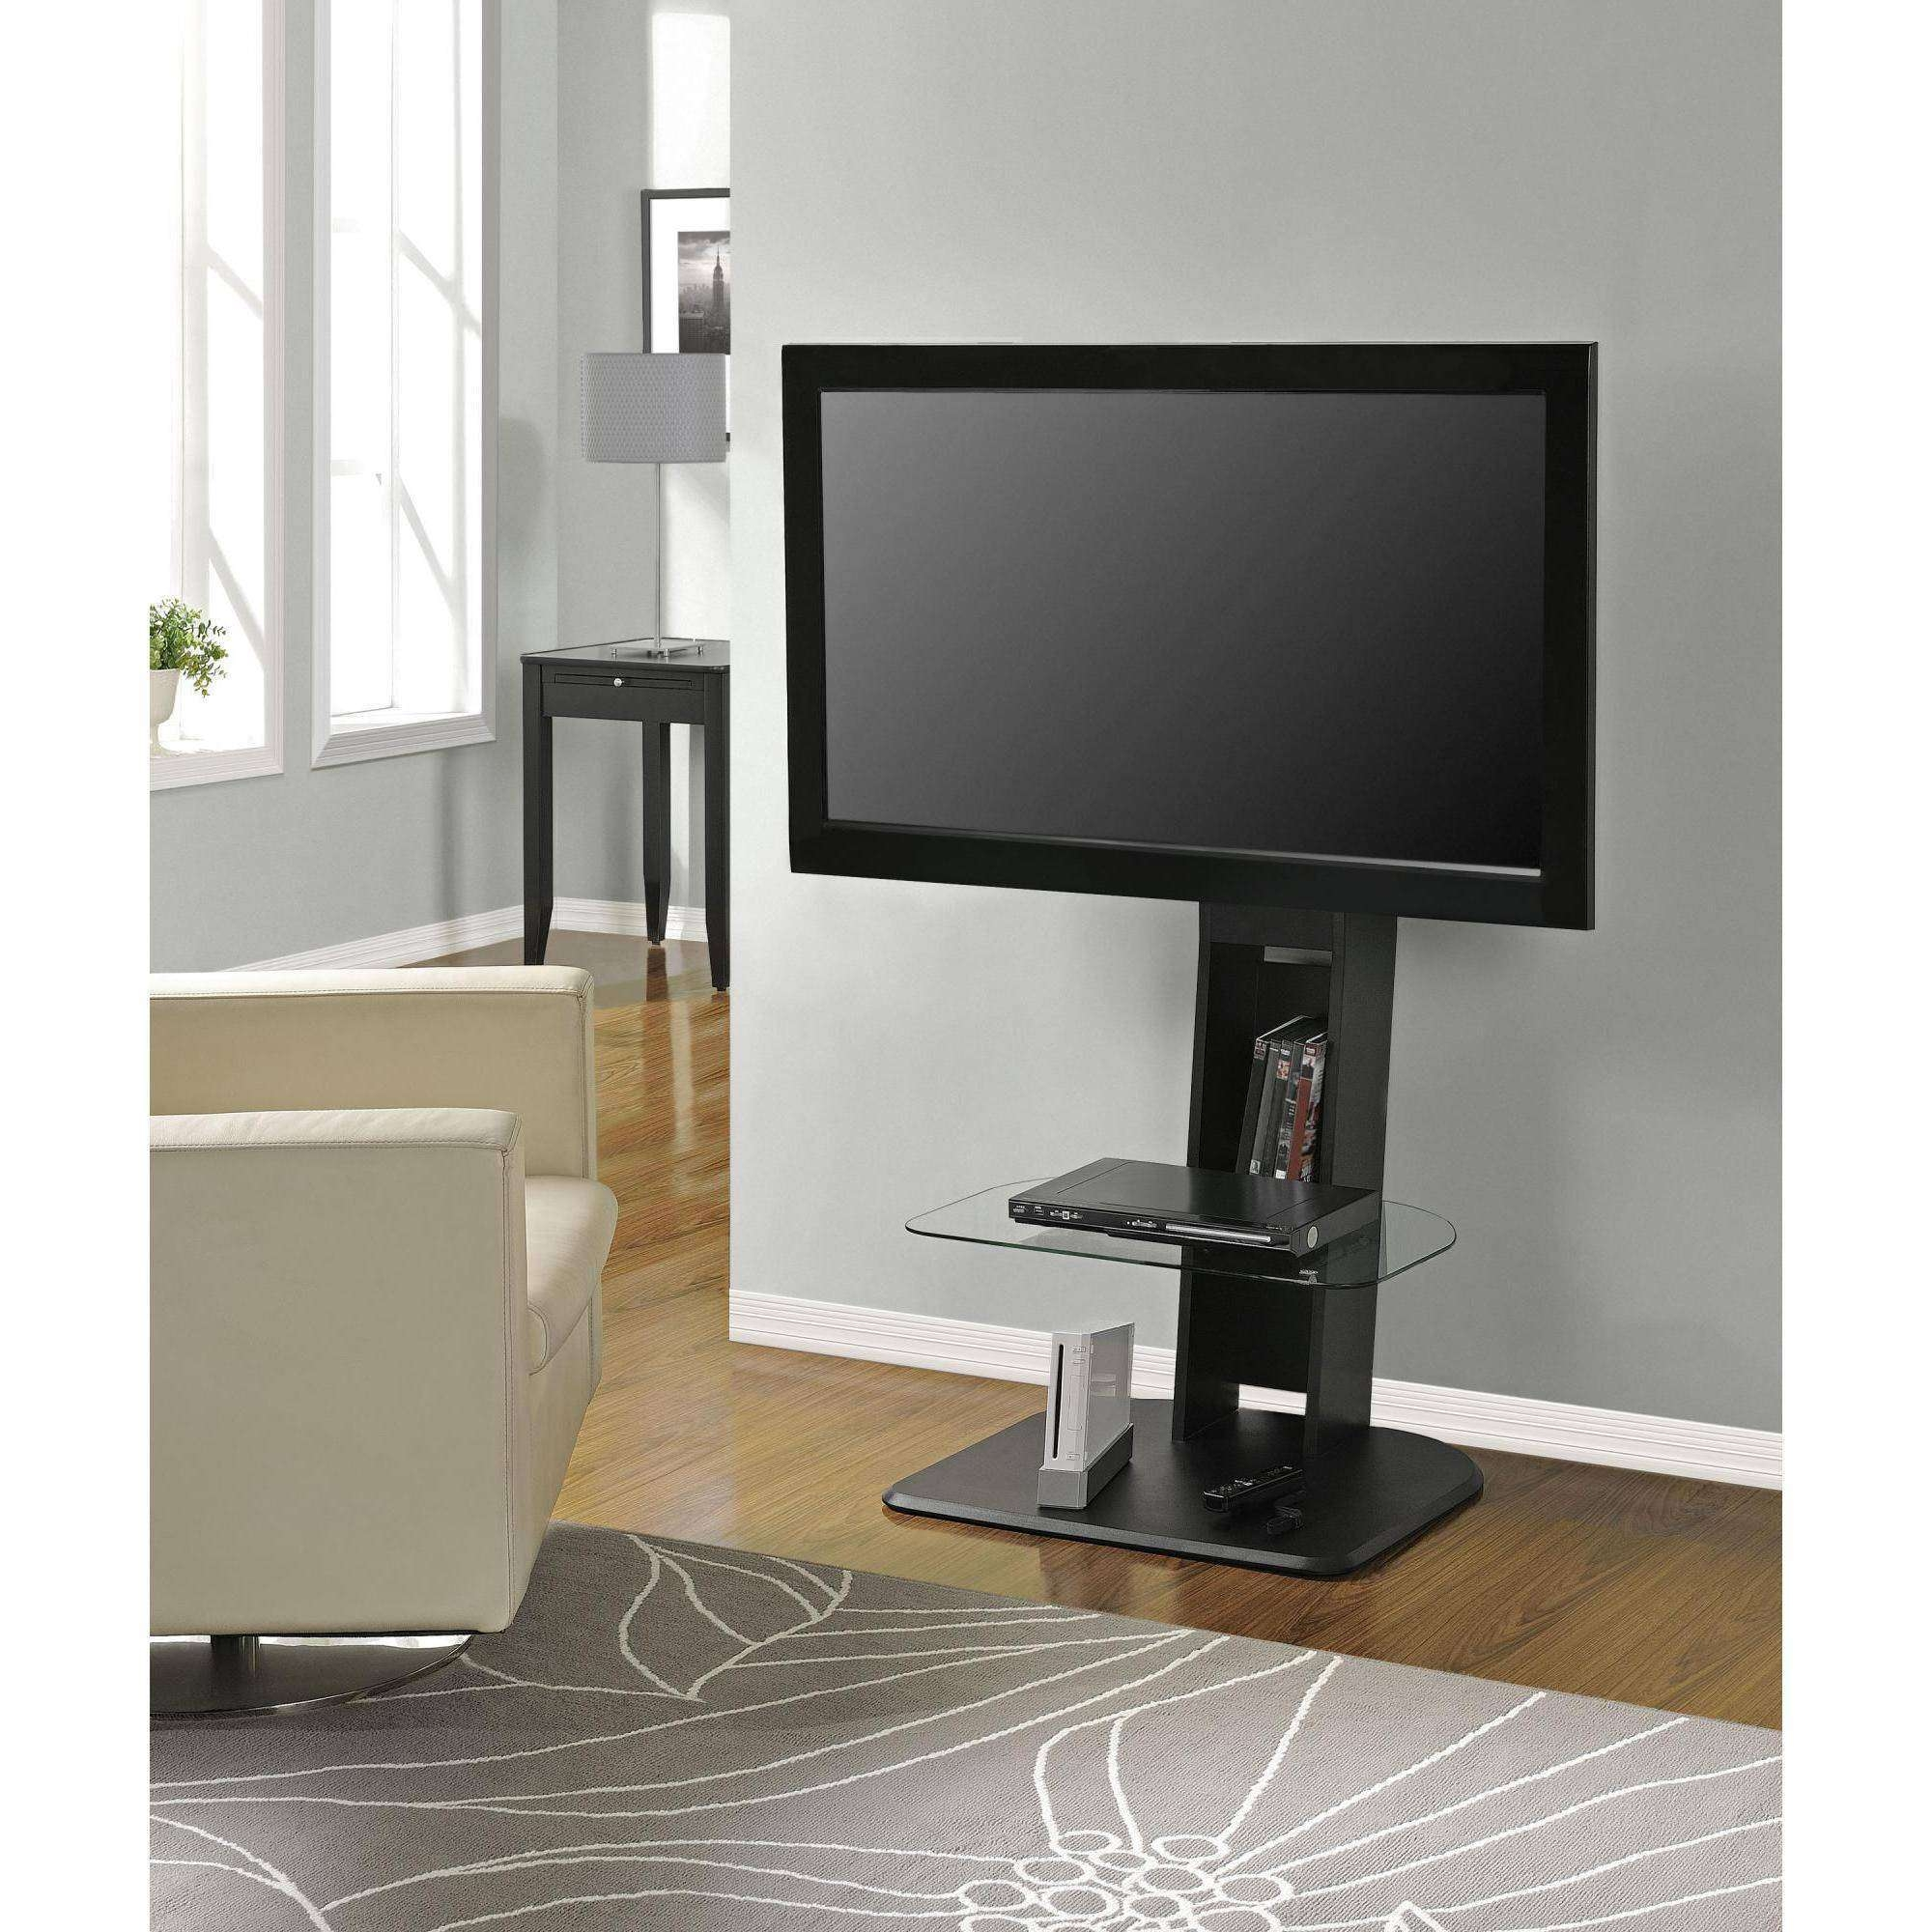 Tv Stands & Entertainment Centers – Walmart With Regard To 50 Inch Corner Tv Cabinets (View 19 of 20)